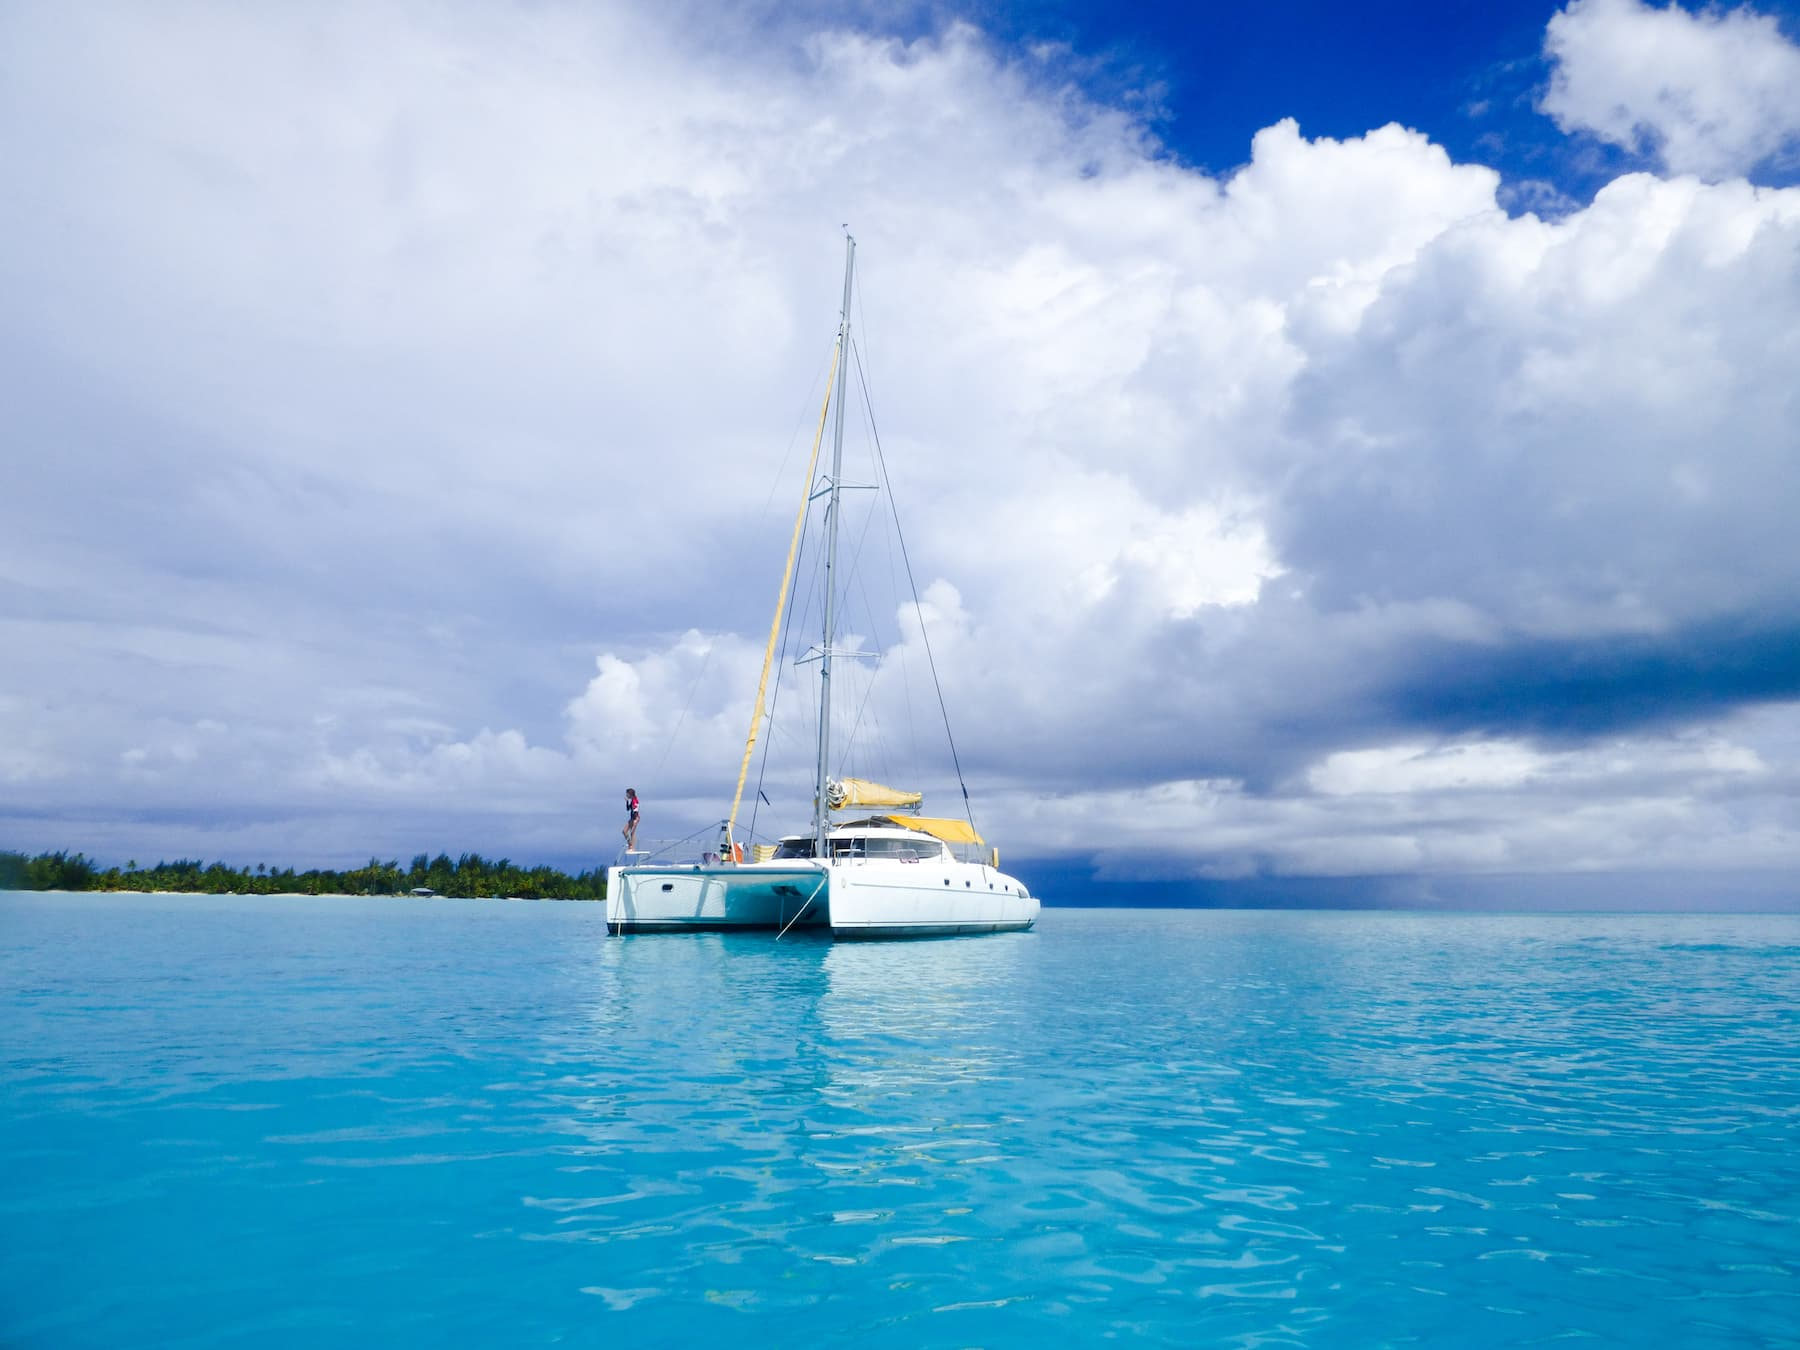 https://tahititourisme.com/wp-content/uploads/2017/08/bateau-tlc-modif-11-copie.jpg